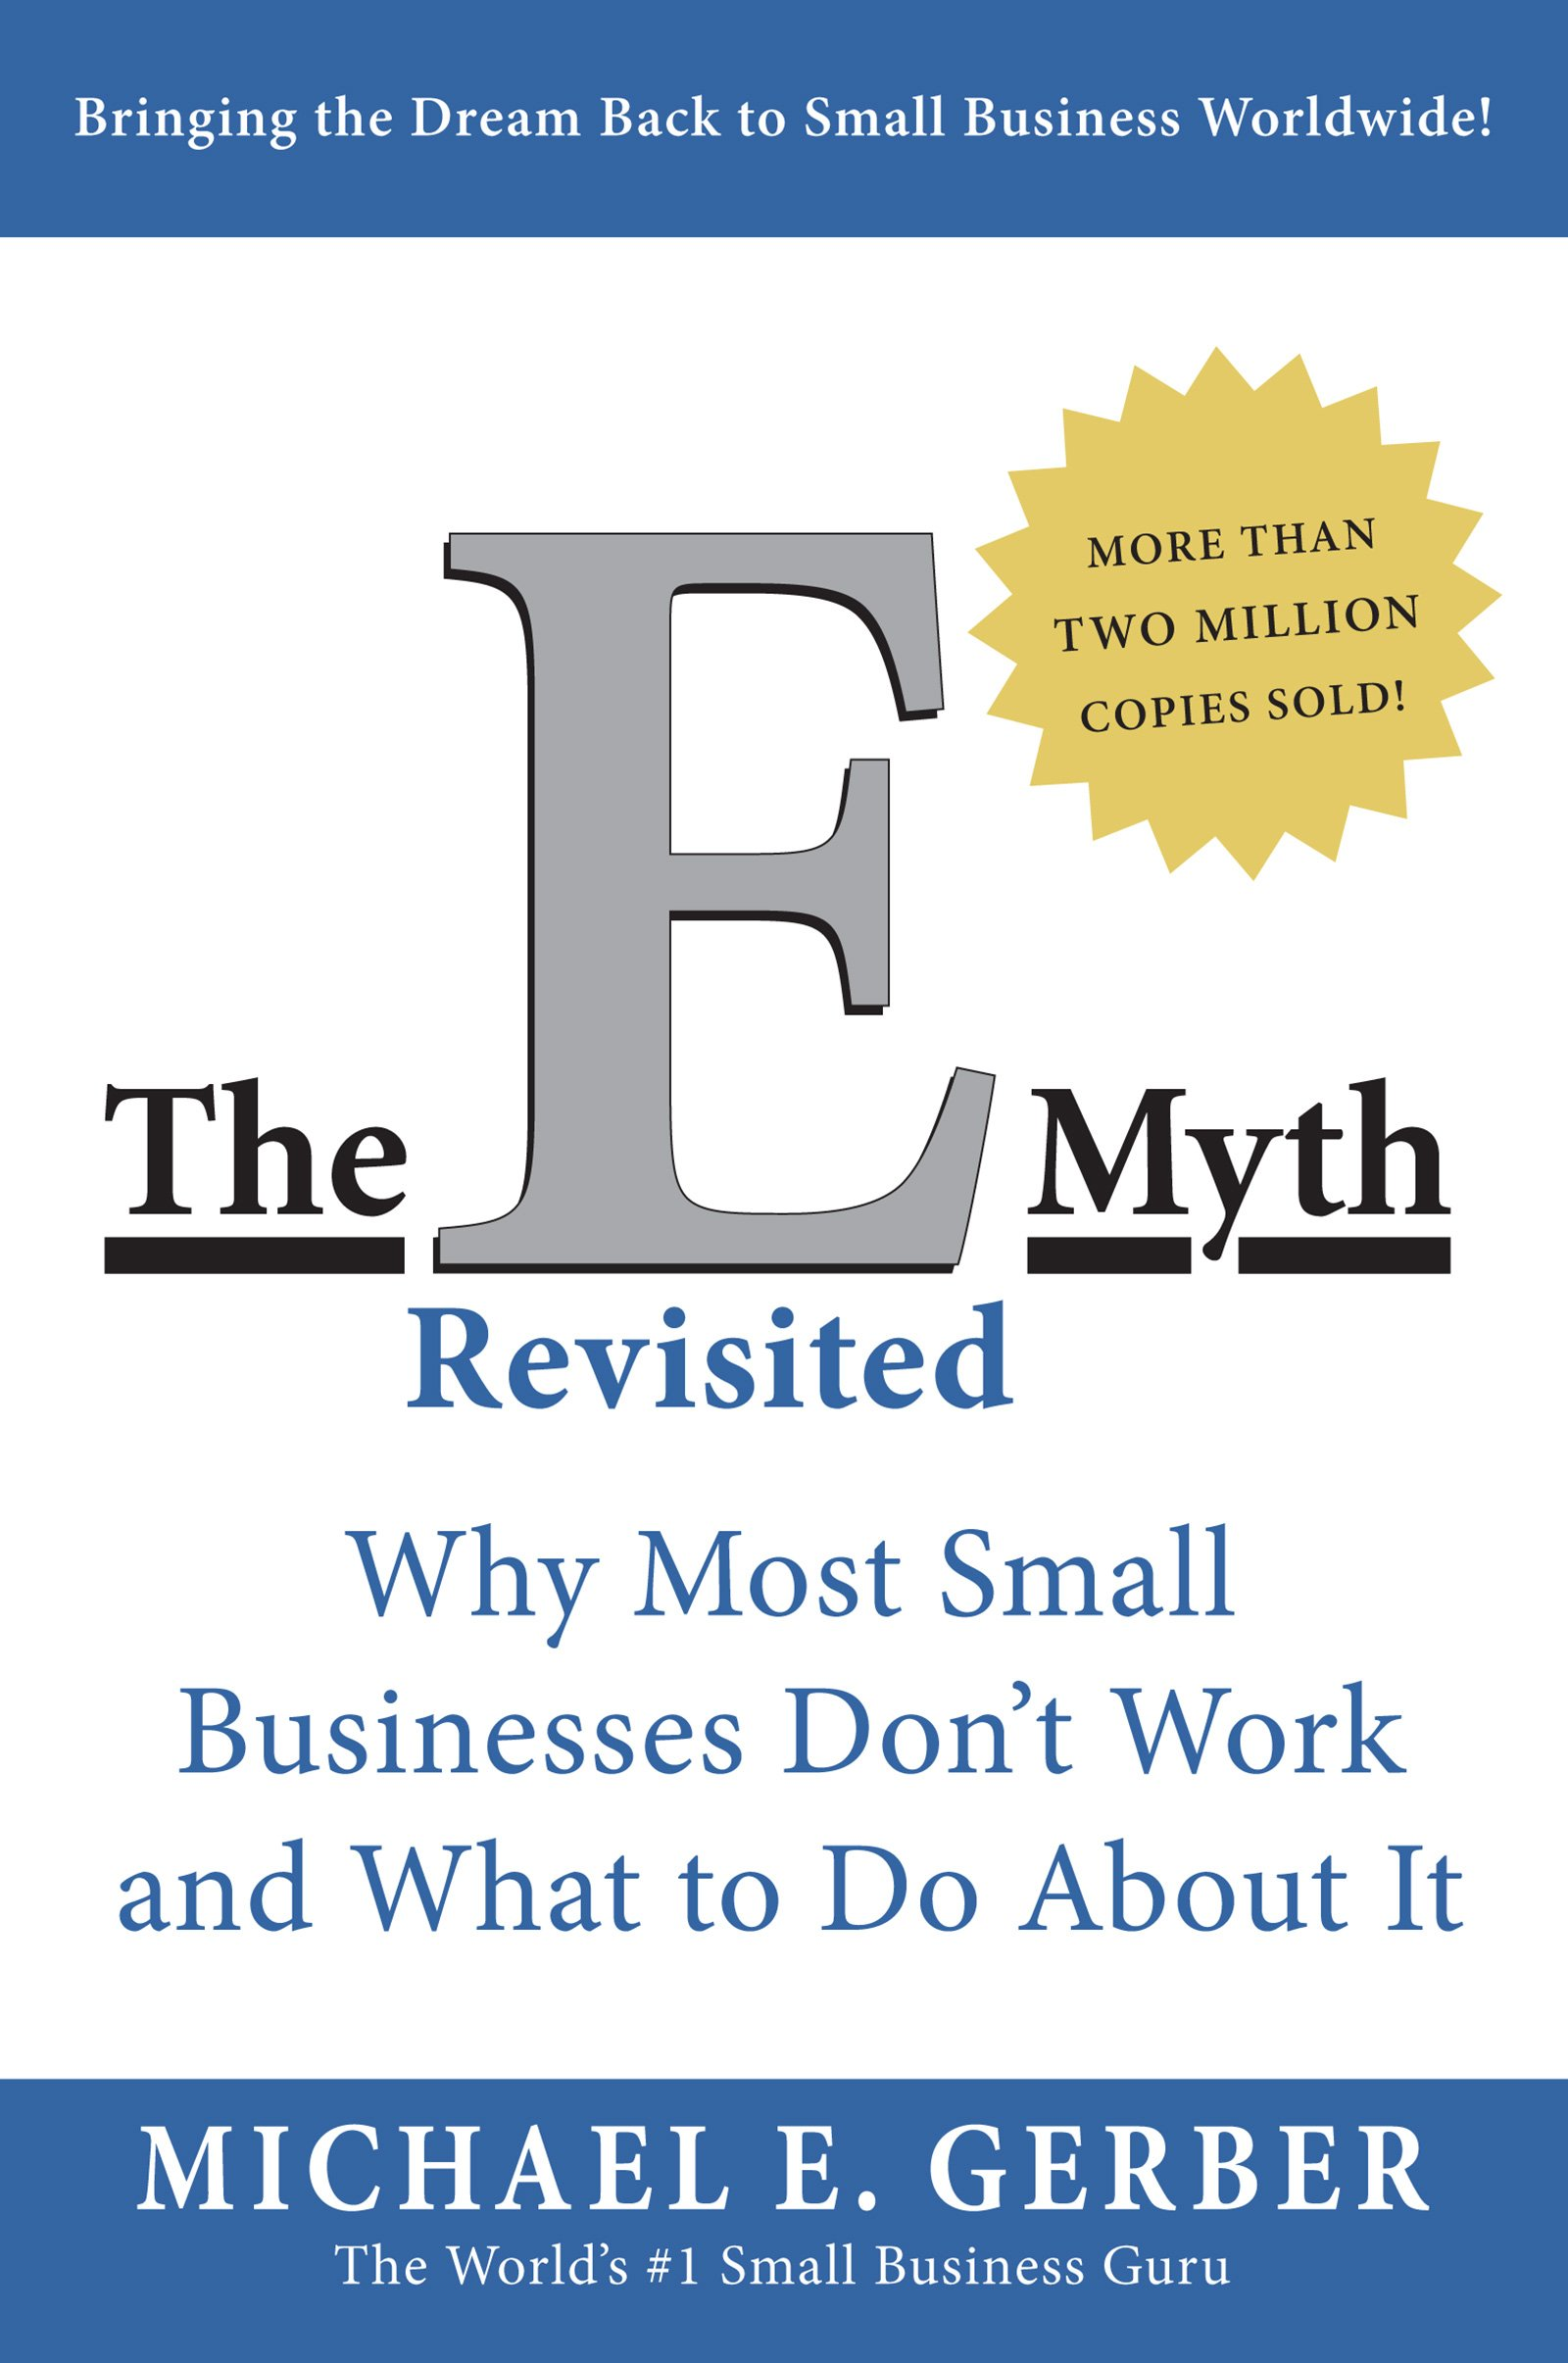 The EMyth Revisited Why Most Small Businesses Dont Work And - 20 funniest reviews ever written amazon 6 cracked